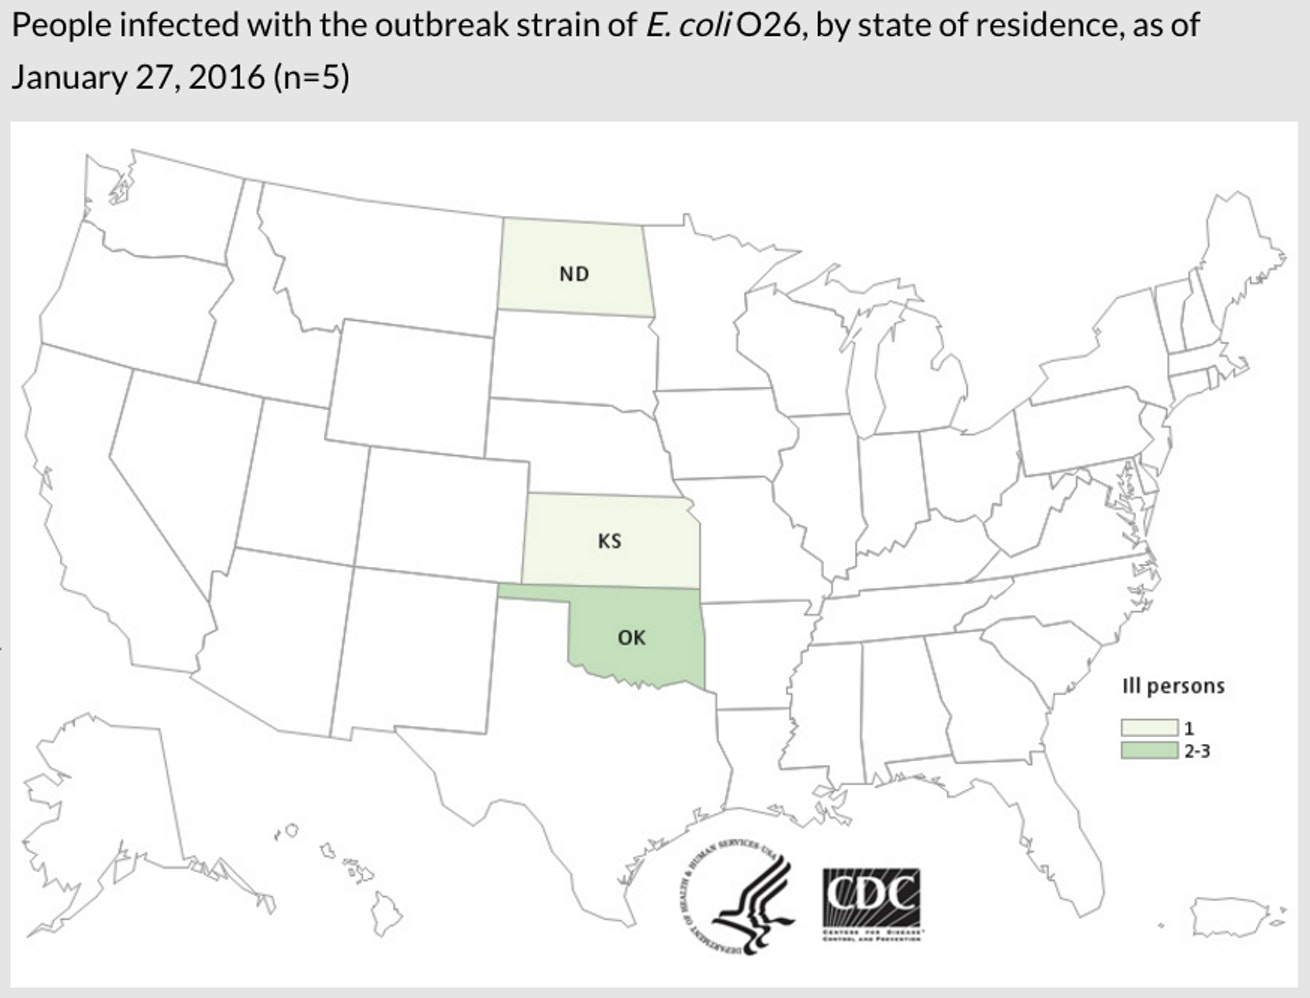 People infected with the outbreak of strain of E. coli O26, by state of residence, as of January 27, 2016.